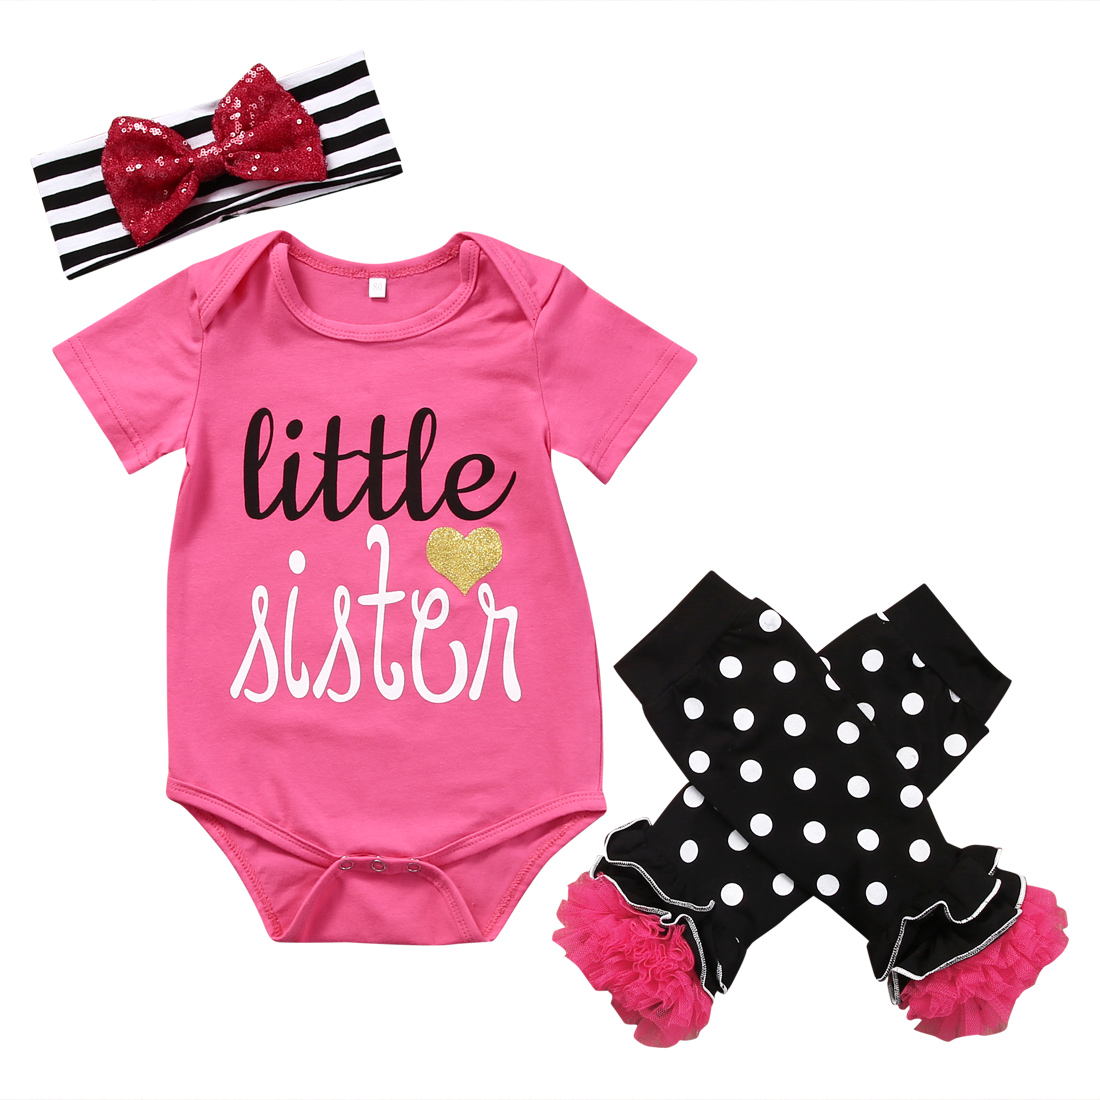 3PCS Set Newborn Baby Girl Clothes Little Sister Romper Jumpsuit+ Leg Warmer+Headband Outfit Bebek Giyim Clothing Outfits 0-24M 3pcs newborn baby girl clothes set long sleeve letter print cotton romper bodysuit floral long pant headband outfit bebek giyim